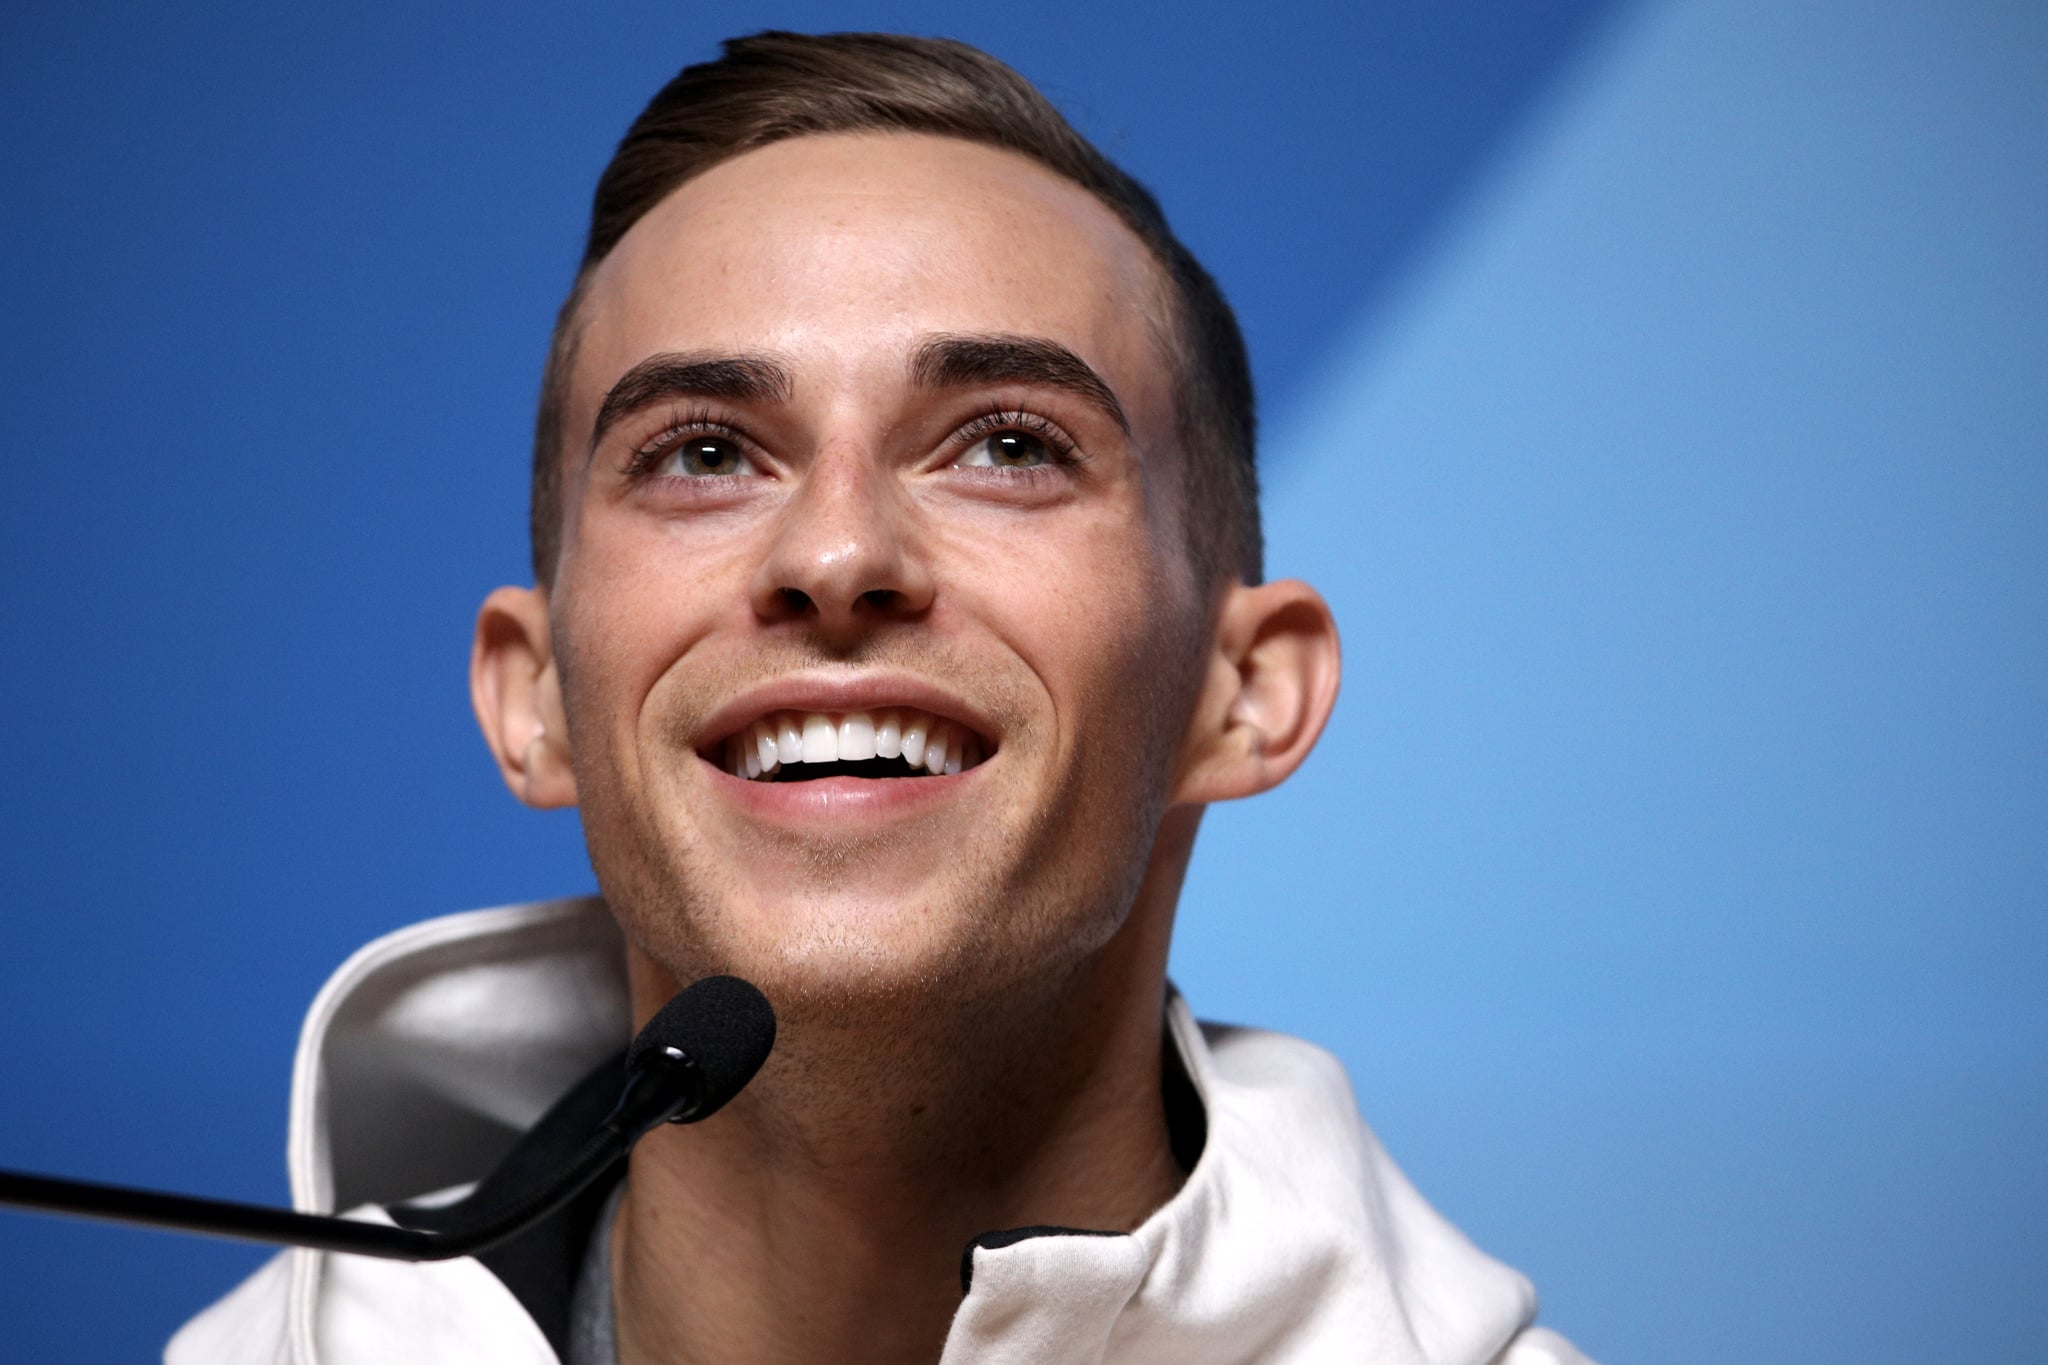 Gay Olympian tells homophobes he's a 'glamazon bitch ready for the runway'